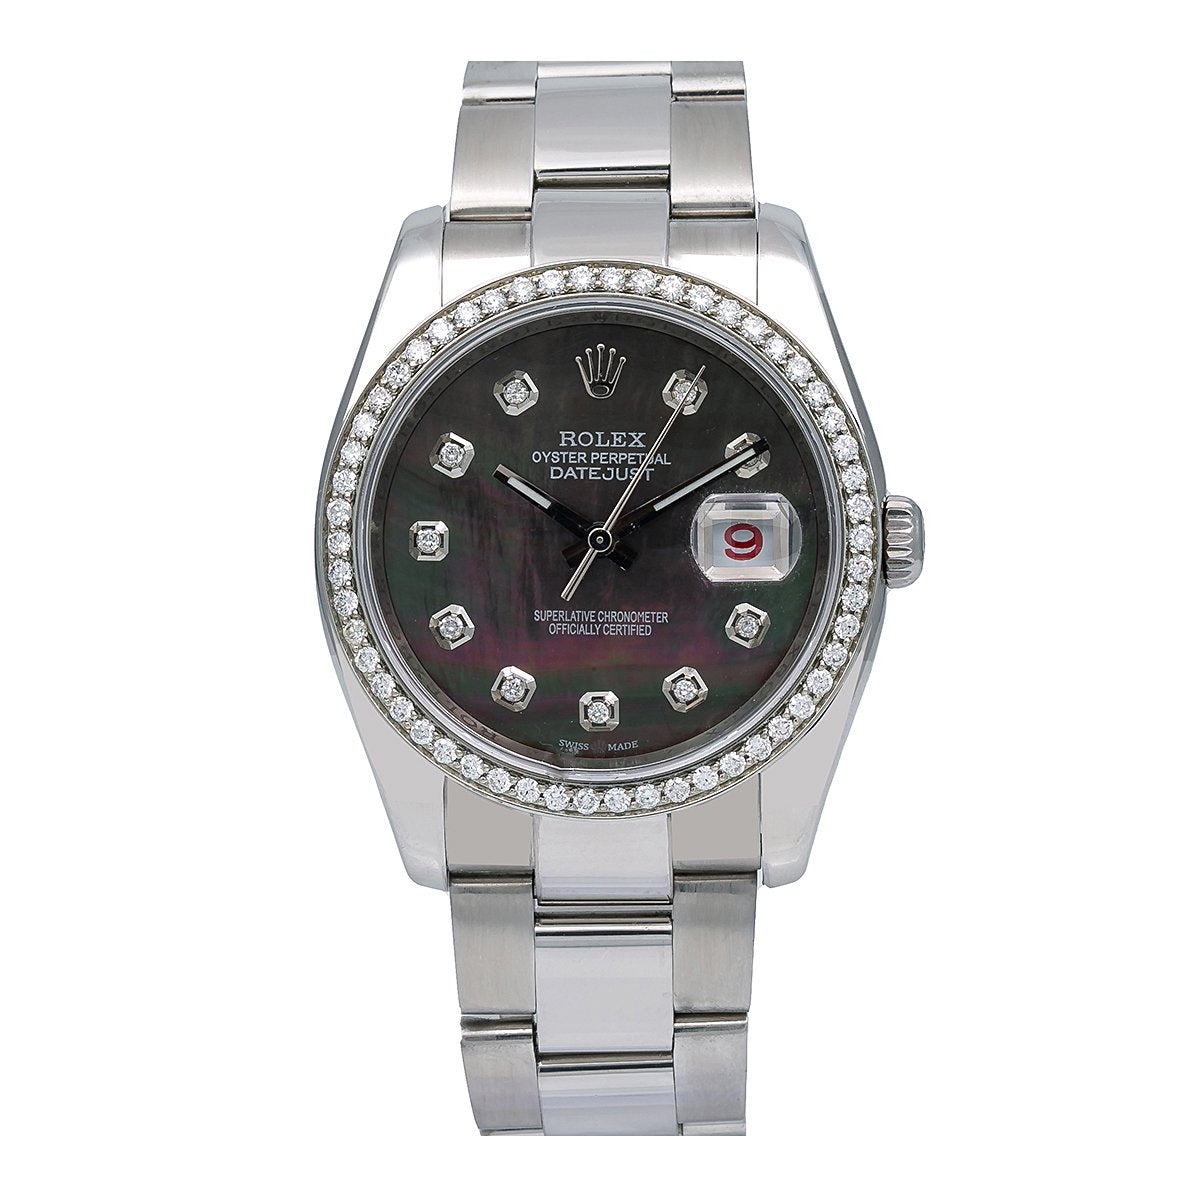 Rolex Datejust Diamond Watch, 116200 36mm, Mother of Pearl Dial With 1.20 CT Diamonds